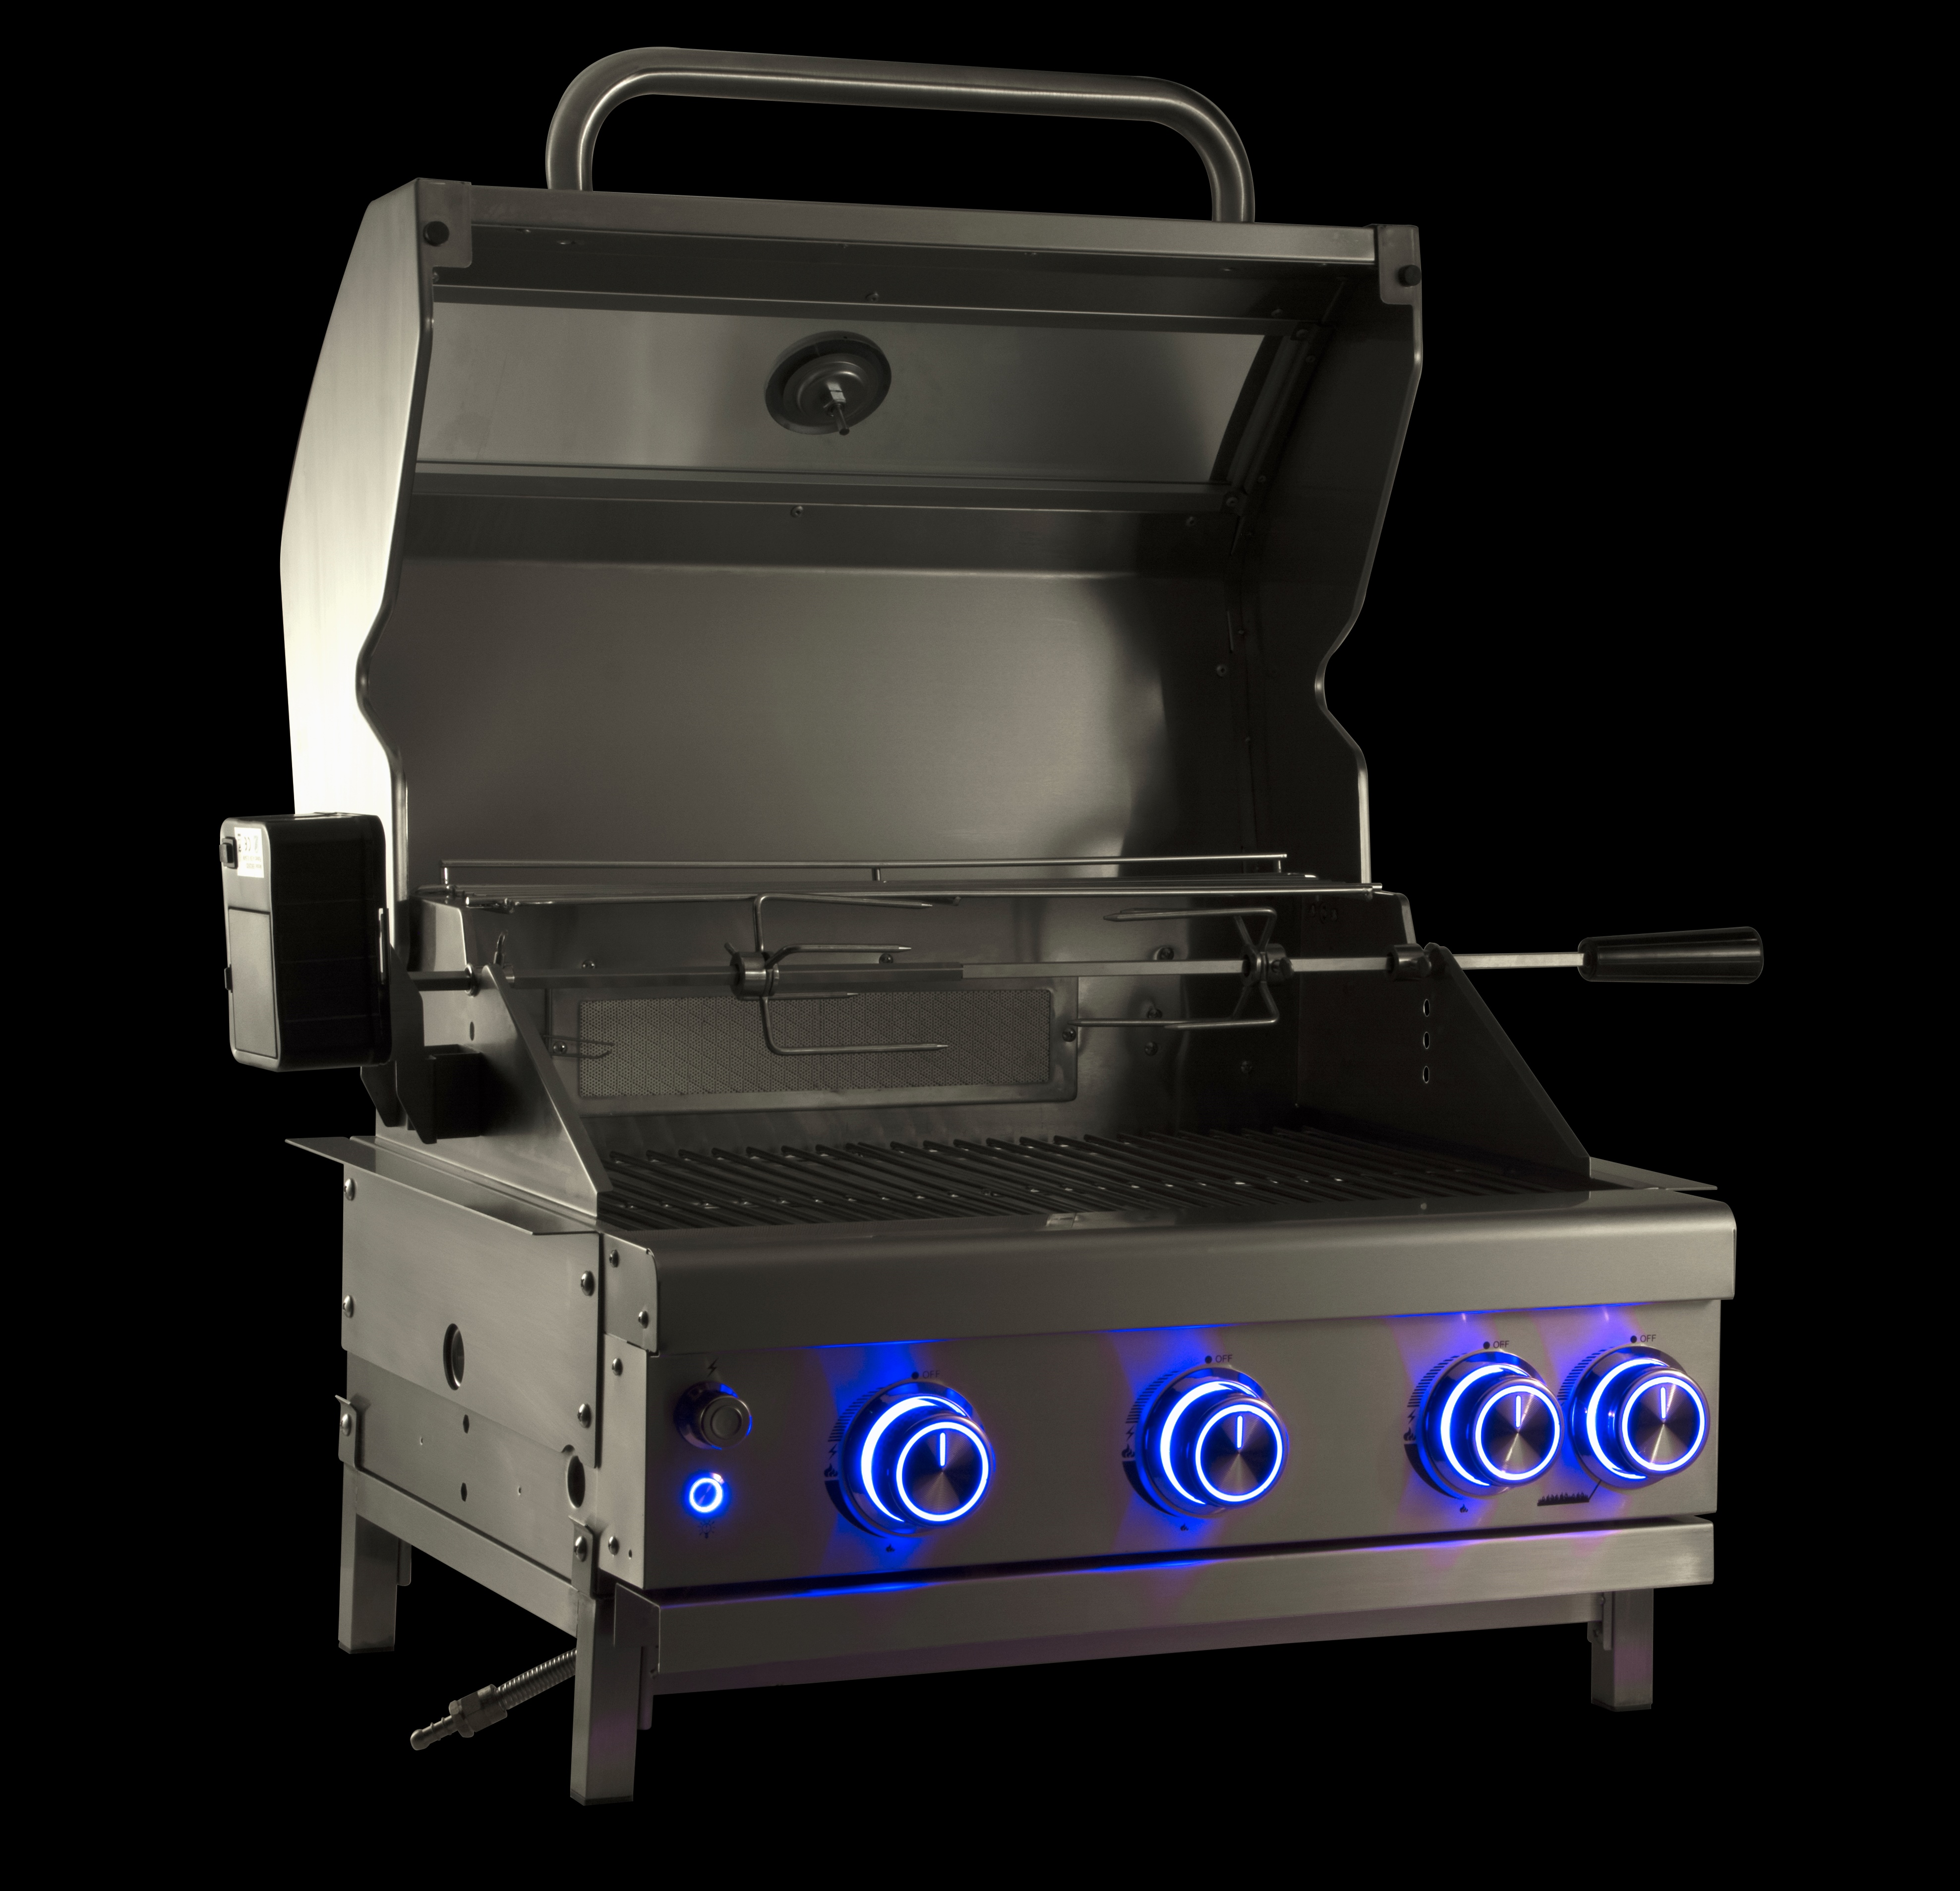 3 Burner Built-In Propane Gas Grill